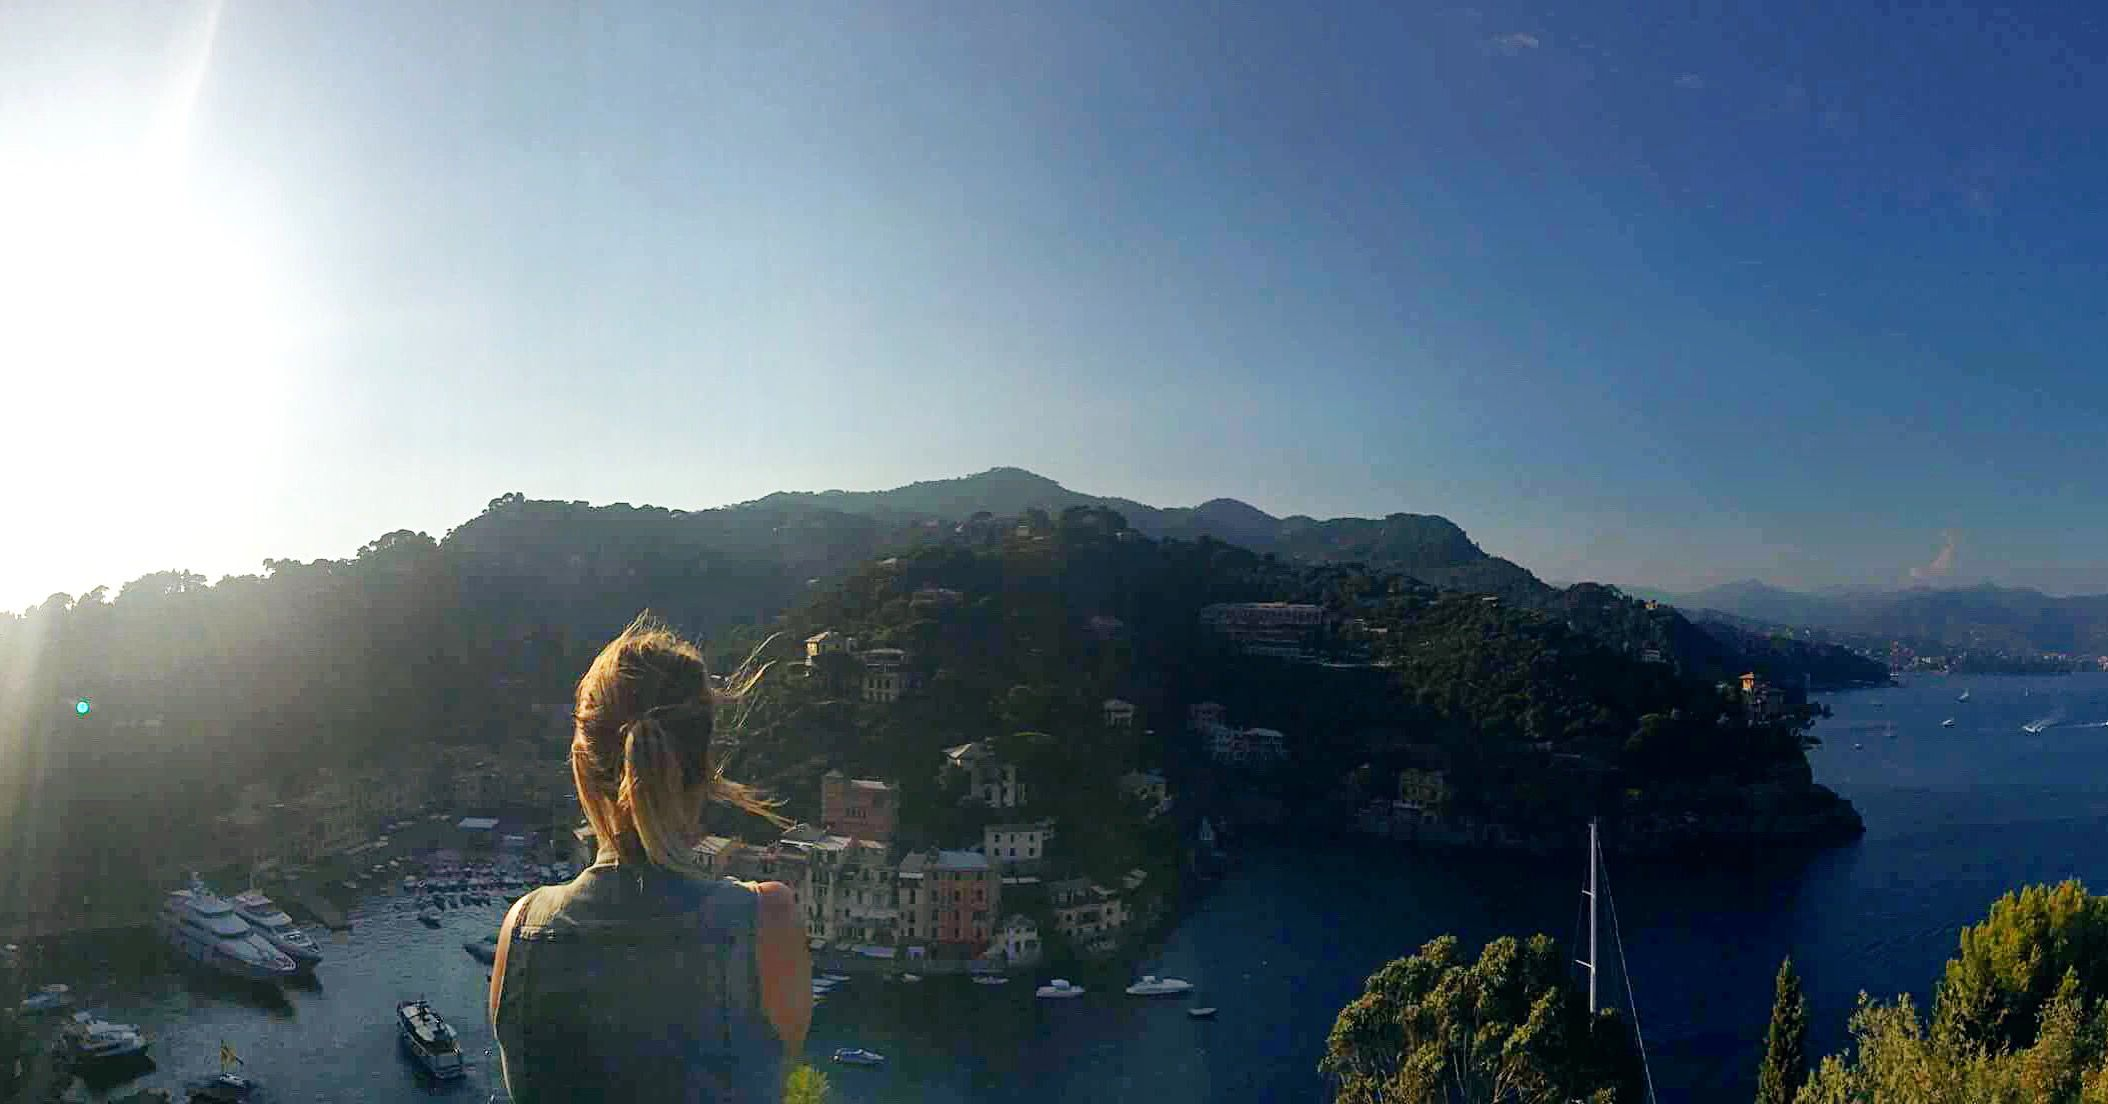 How do I stay #irontekfit? I hike! This was at the top of Portofino, Italy. Thanks @influenster and @IronTekFit #contest